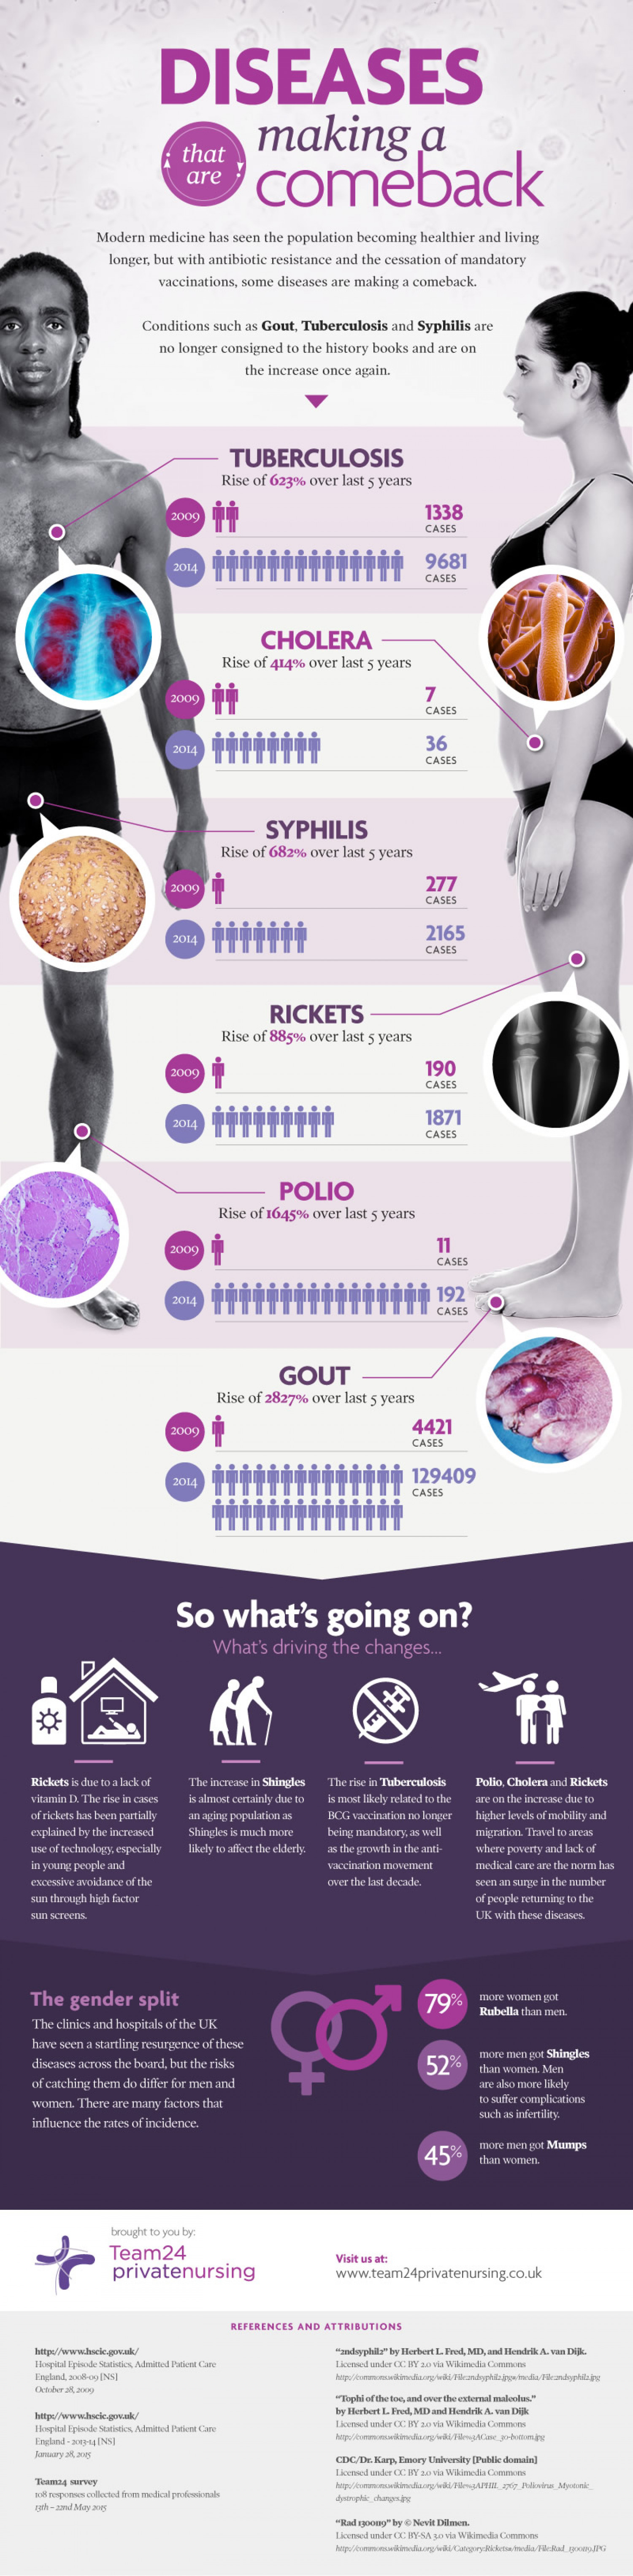 Diseases that are making a comeback Infographic